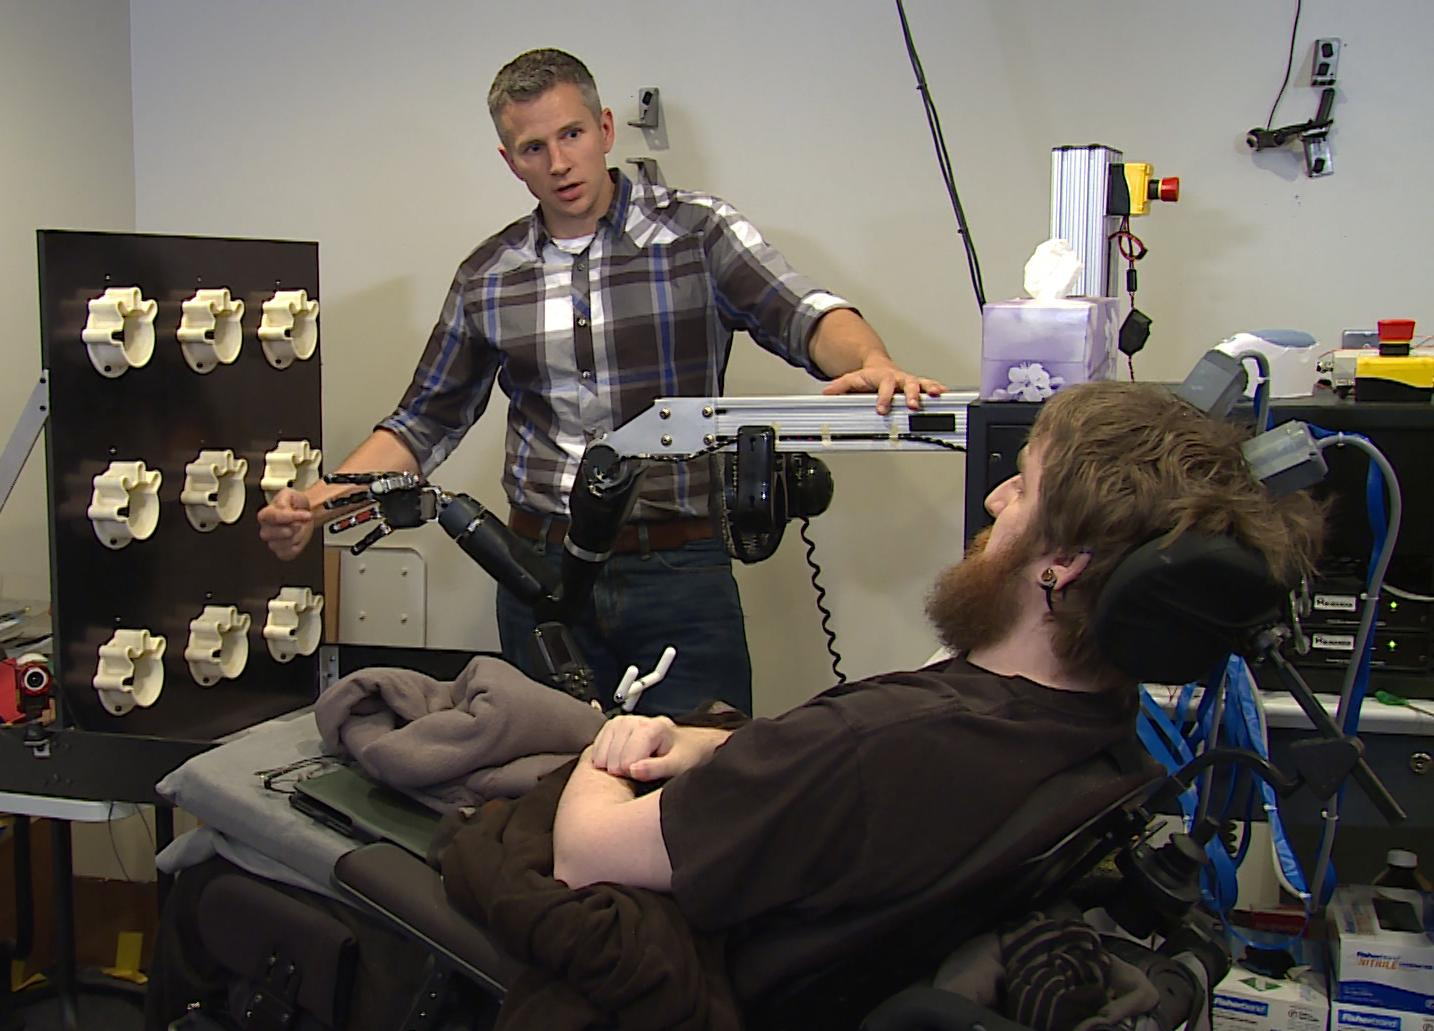 Paralyzed Man Regains Sense of Touch with Robotic Arm | Chicago News